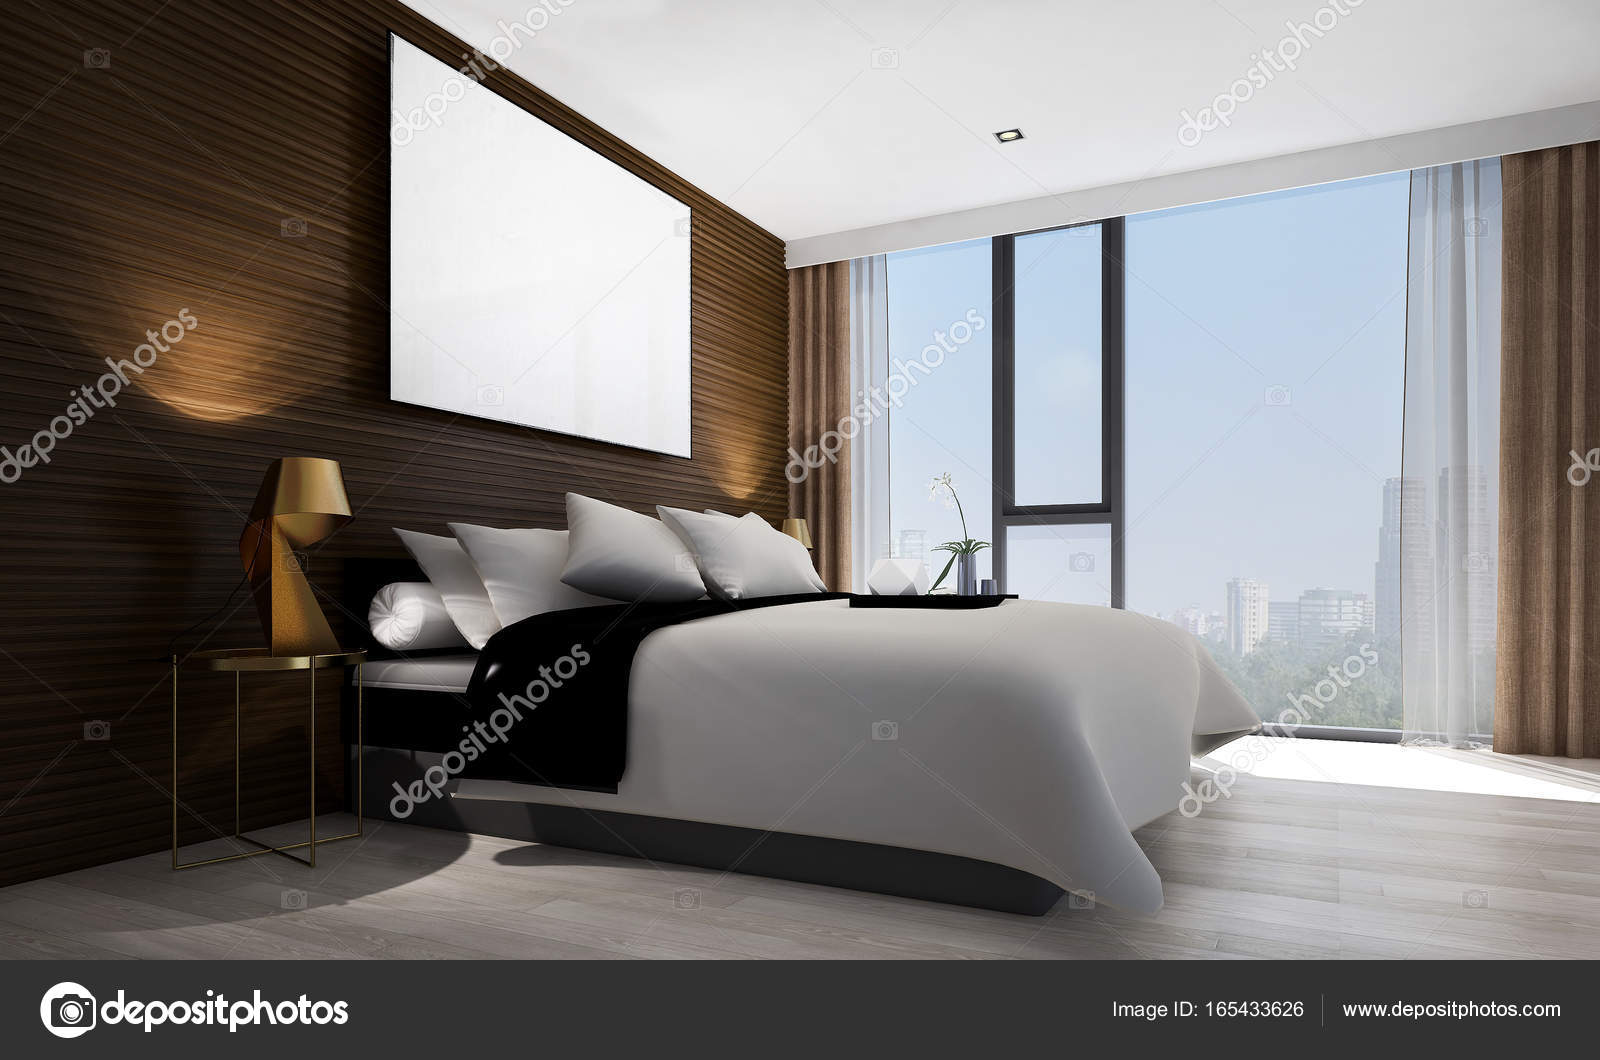 The Modern Bedroom Interior Design And Wood Wall Texture